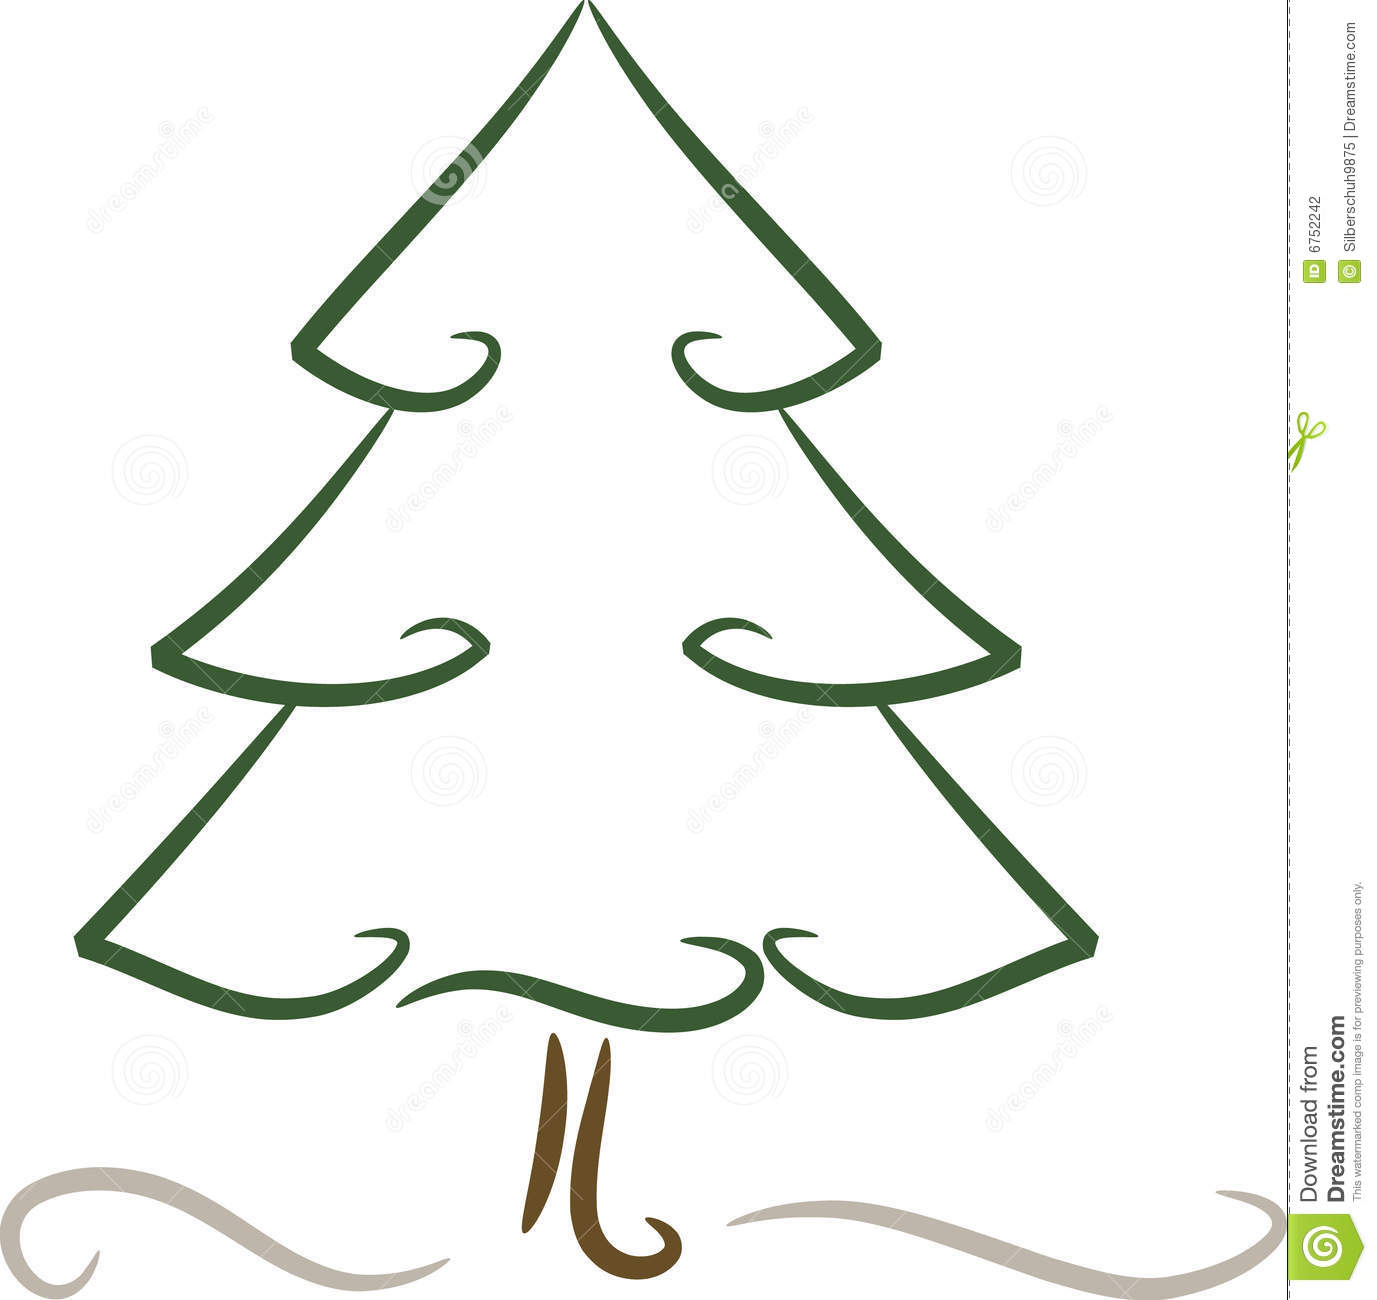 Holly clipart easy. Christmas drawing at getdrawings